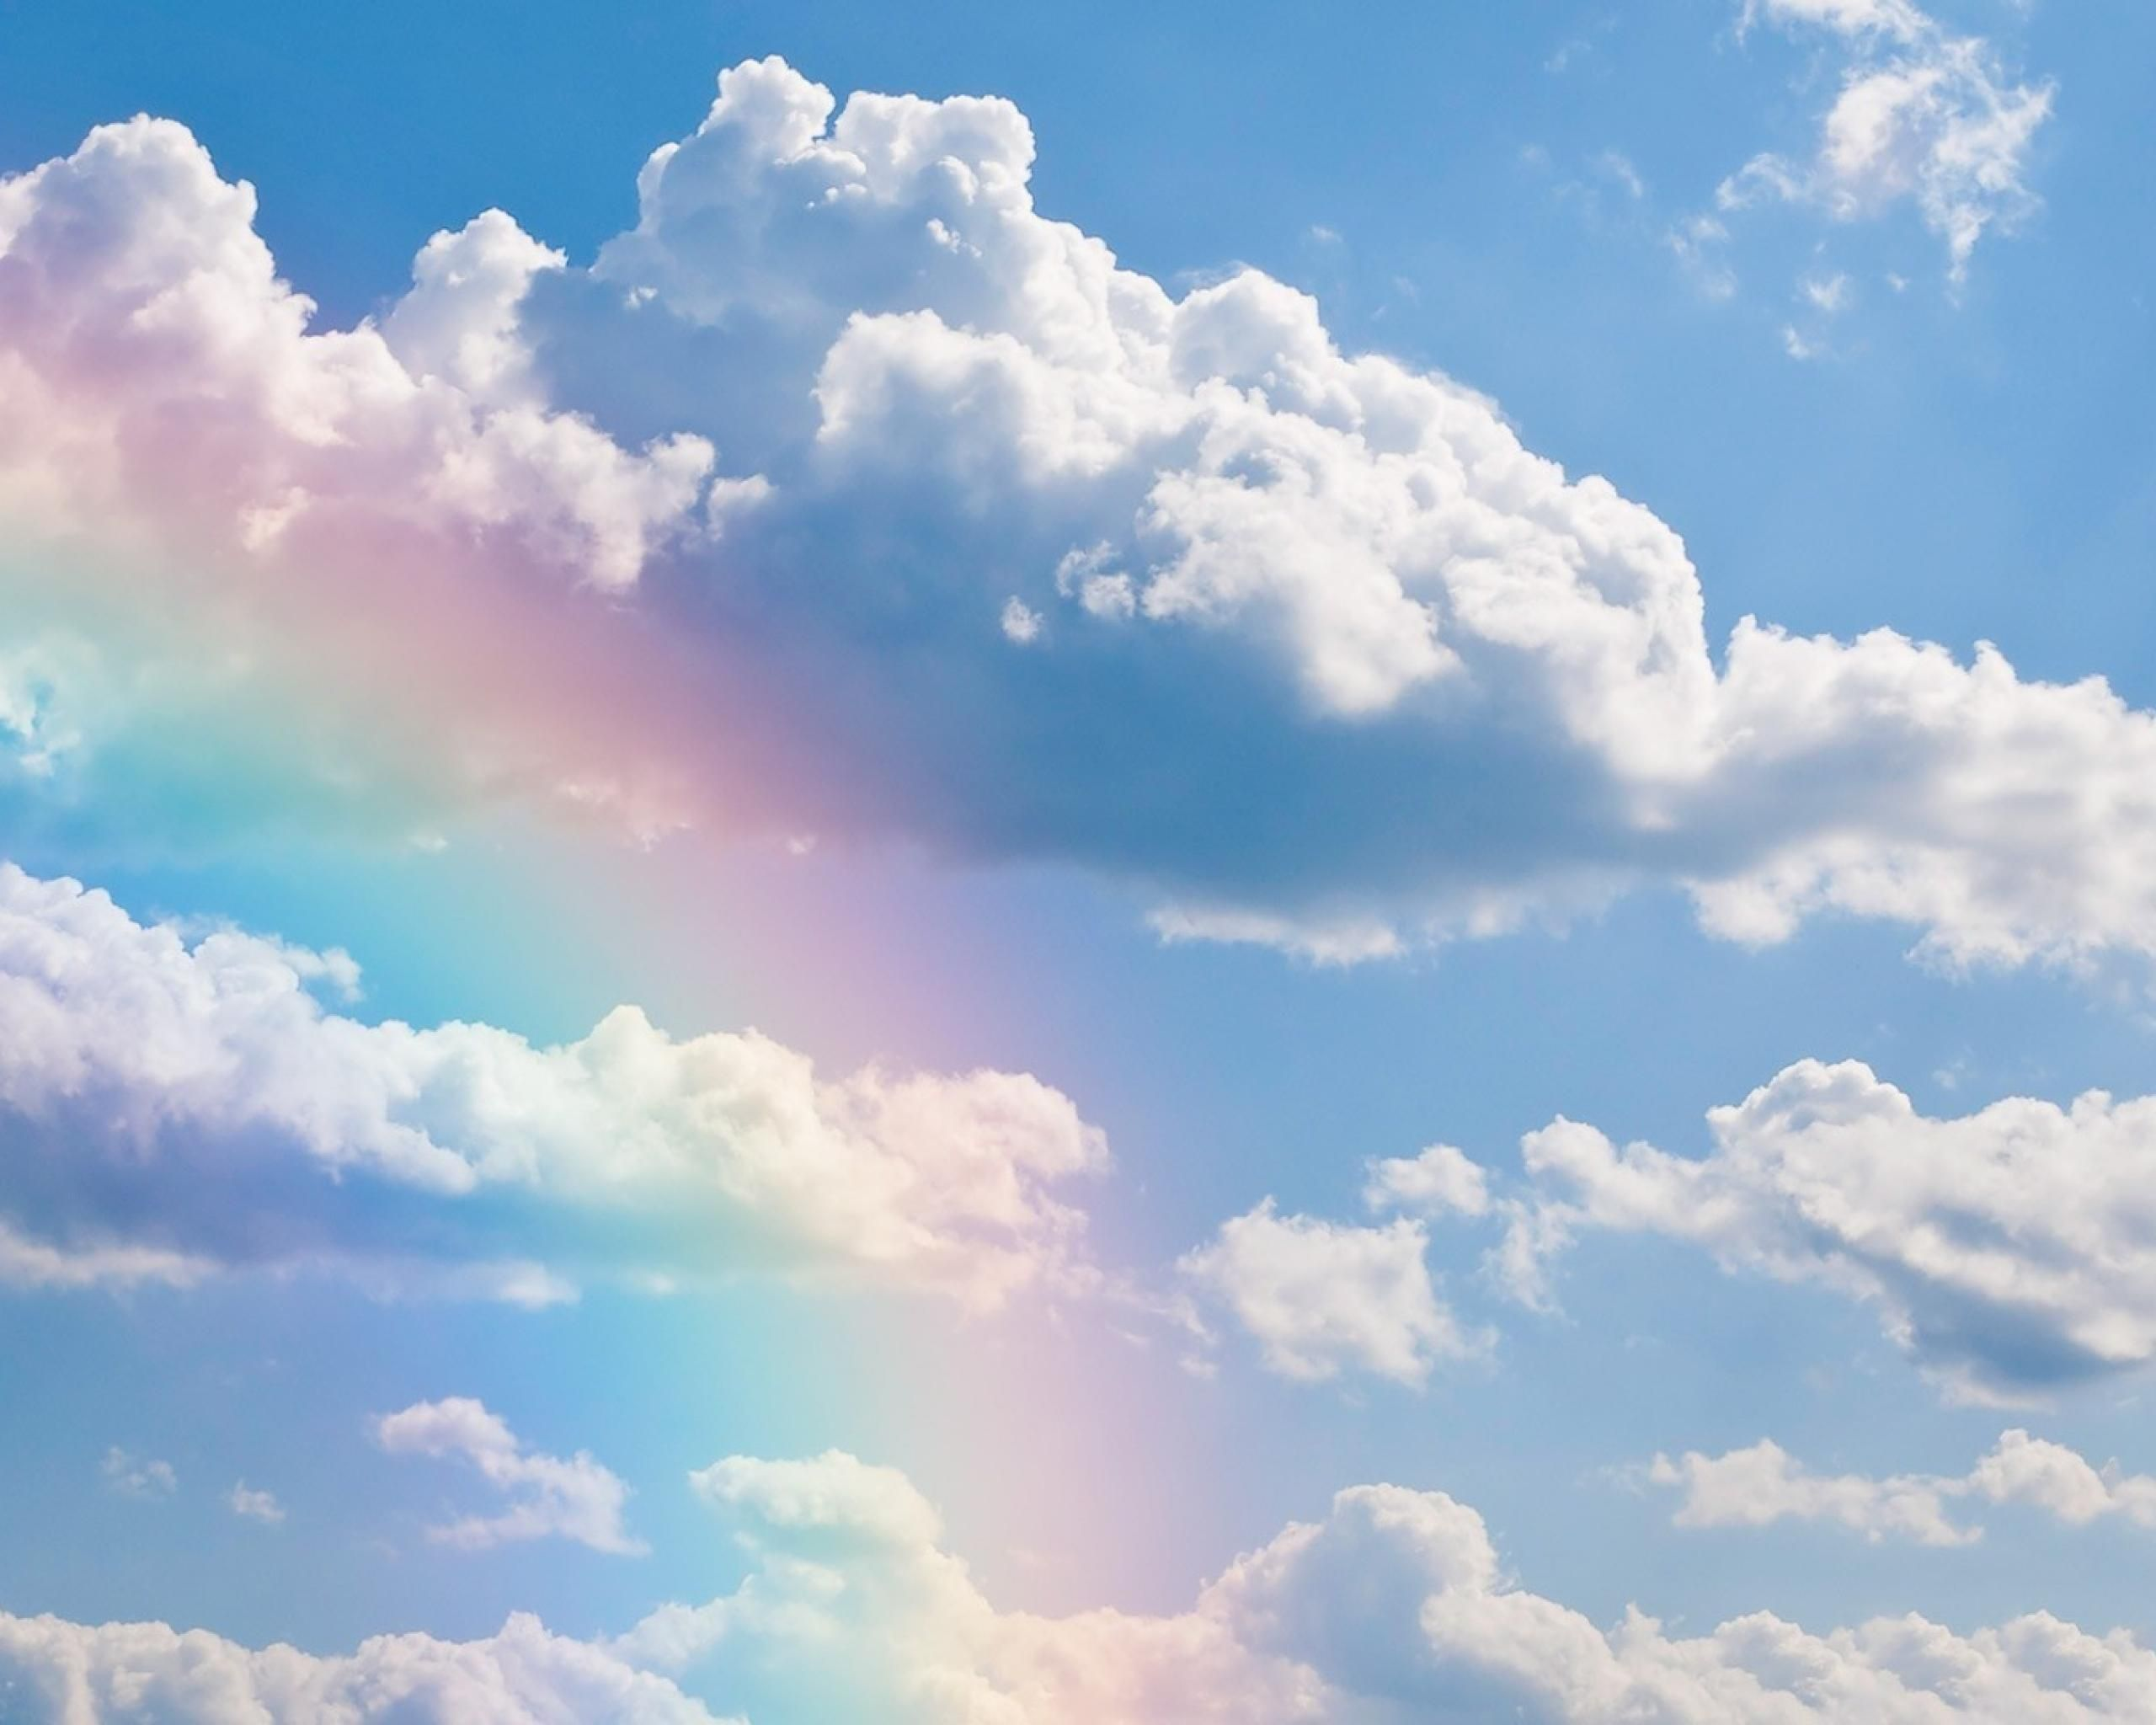 Rainbows | Rainbows Clouds Sky Rainbow Nature Free Hd Wallpaper with ...